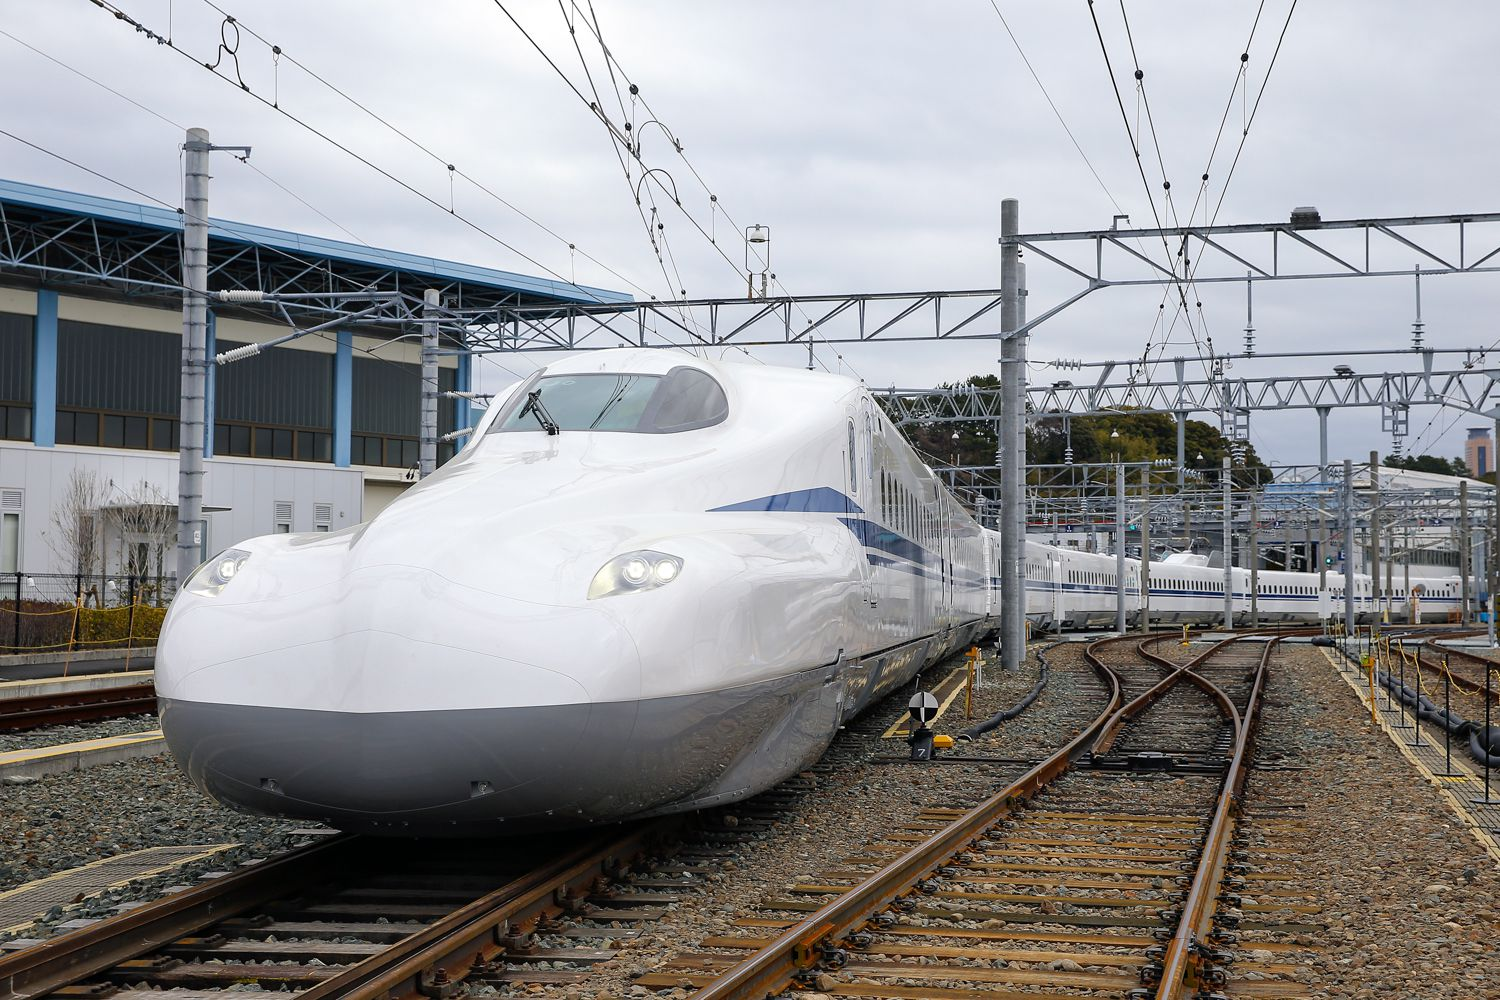 The Shinkansen N700 Supreme train is the planned vehicle for Texas Central Partners' high-speed rail line from Dallas to Houston.